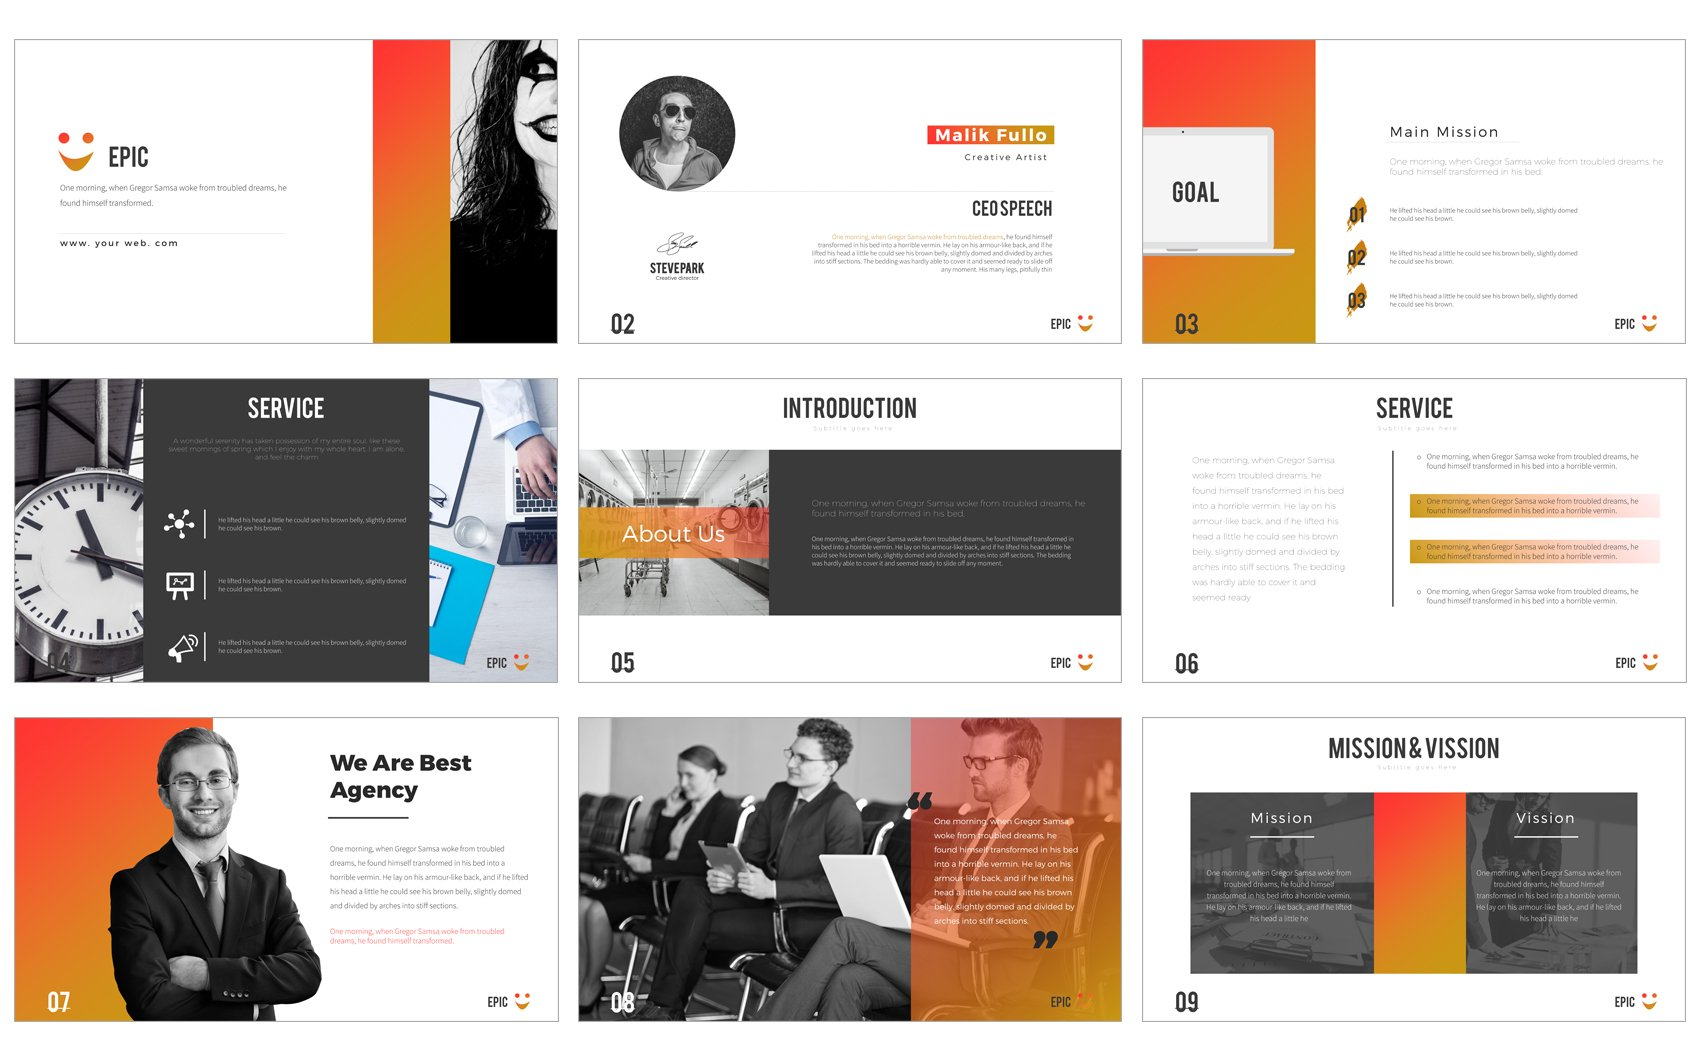 Epic Powerpoint Presentation PowerPoint Template